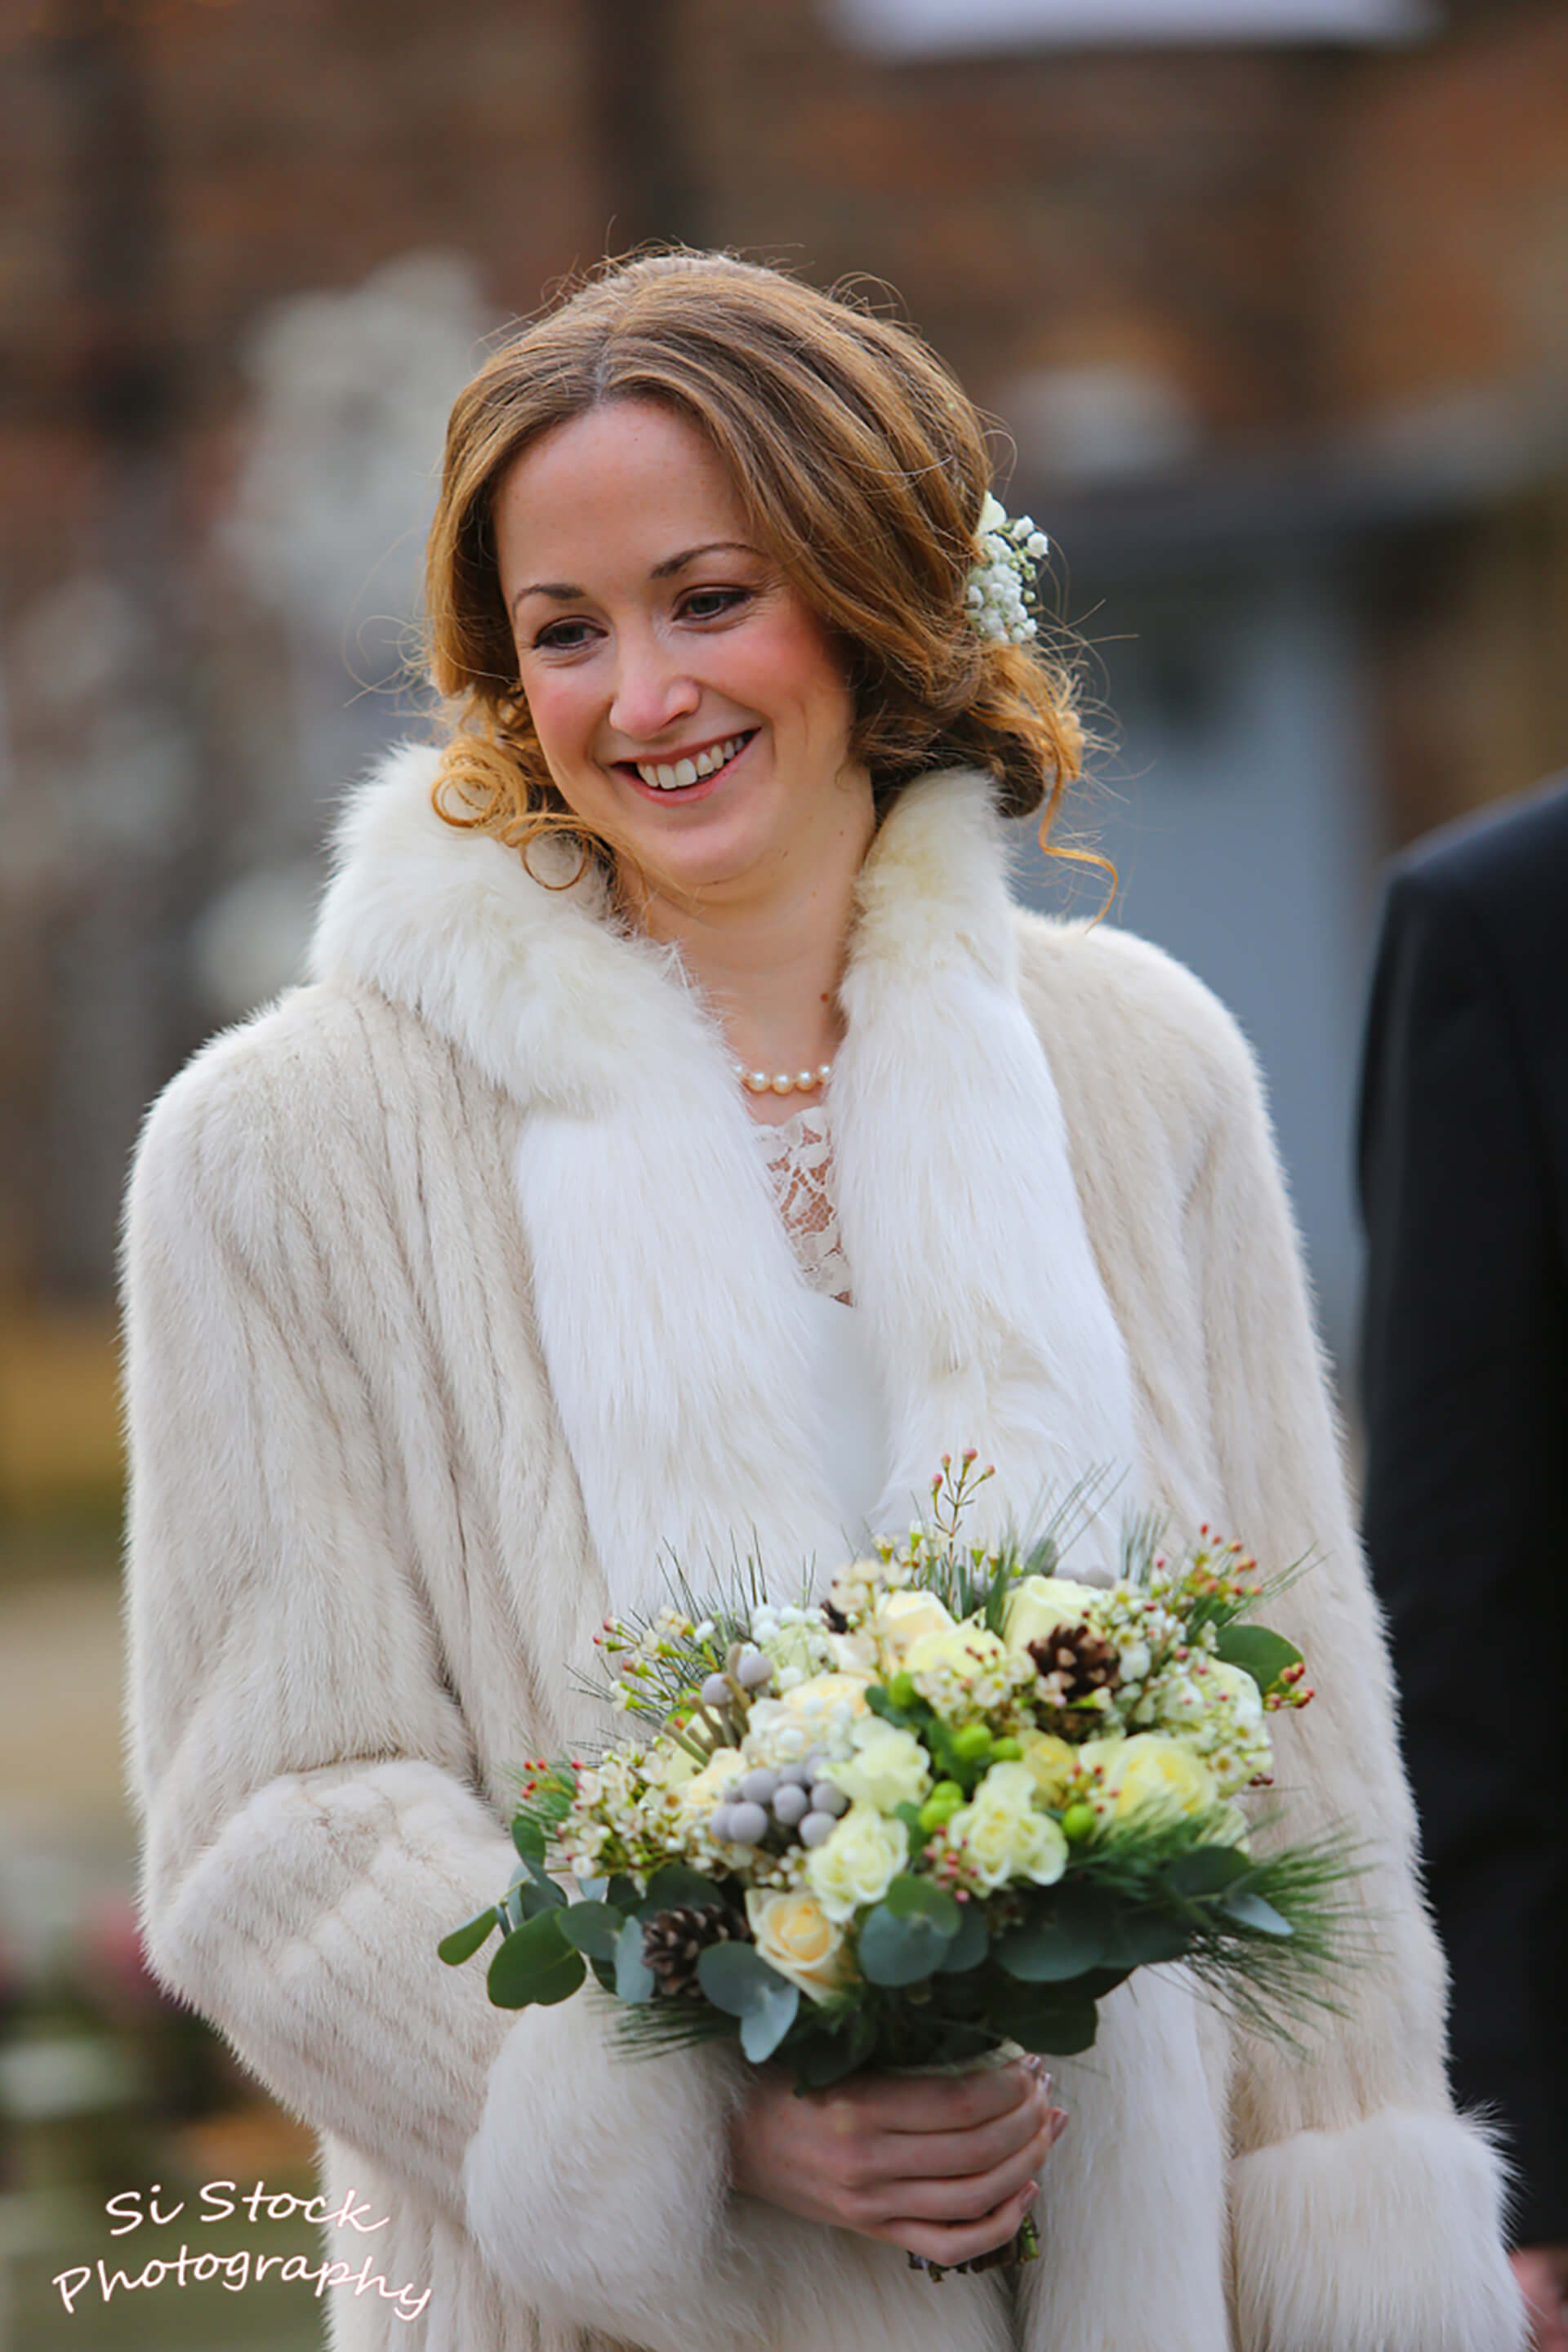 Our beautiful bride Holly, wrapped up for her winter wedding.